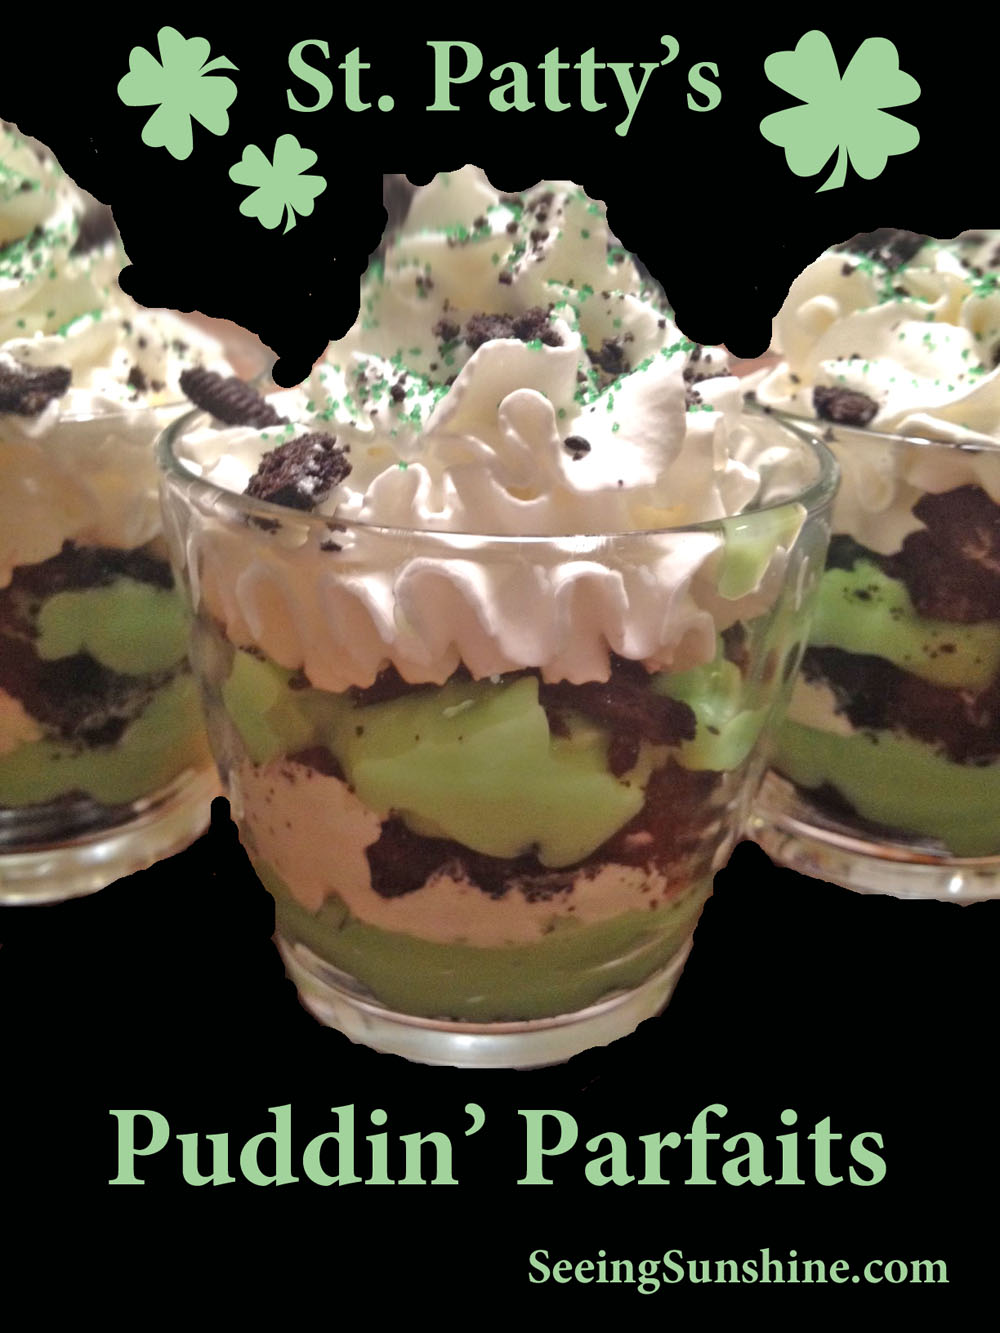 Oreo Pudding Parfaits